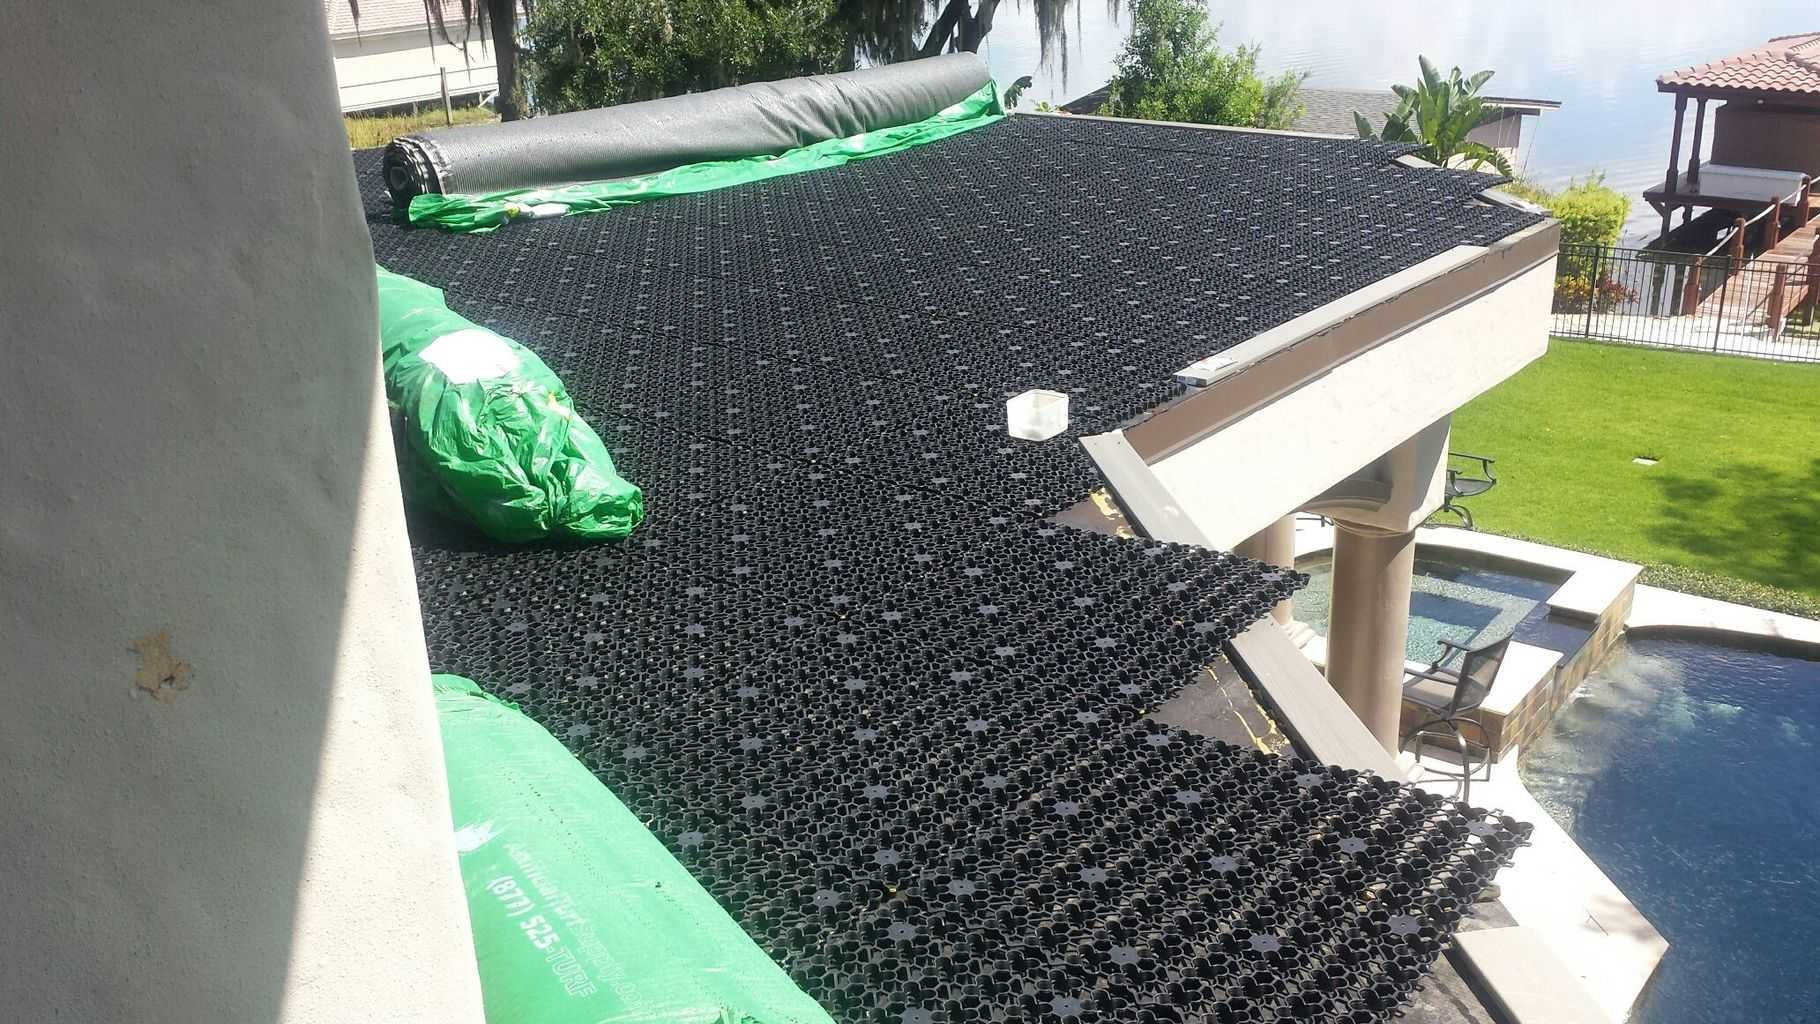 Airdrain Synthetic Turf Green Roof Deck With A View In